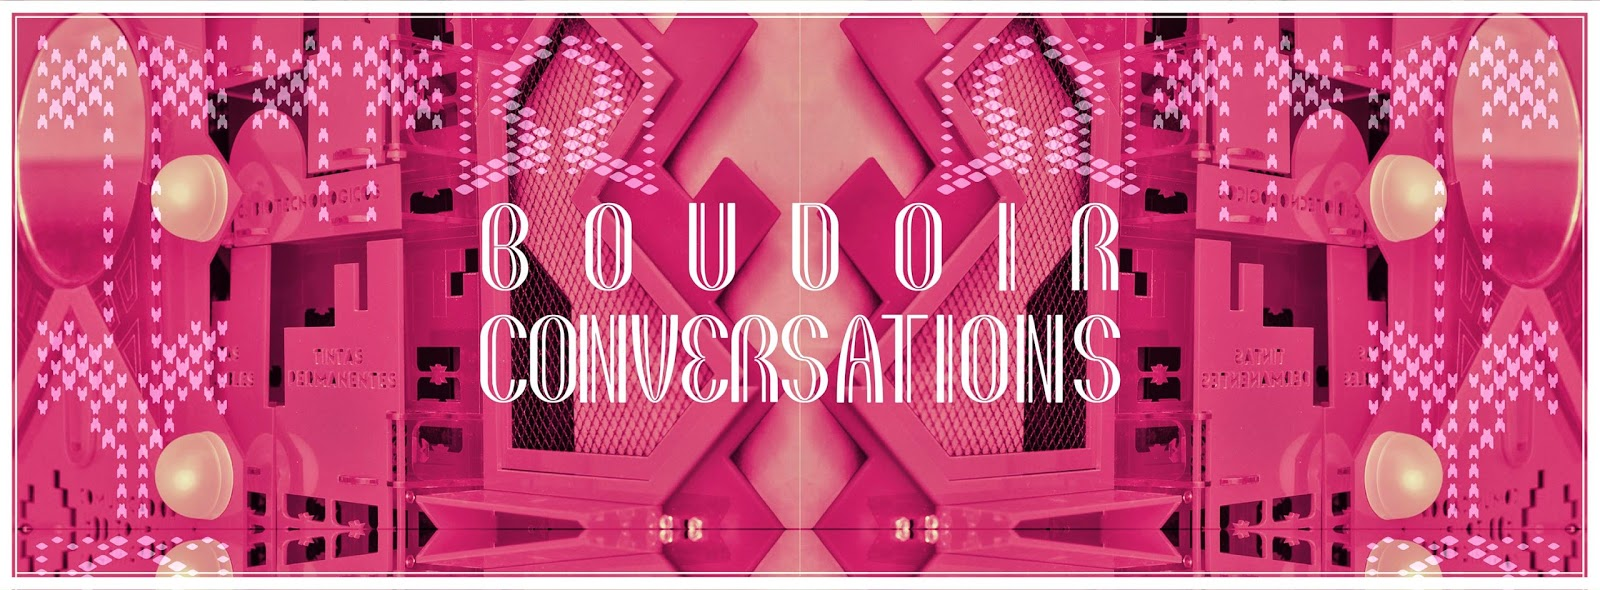 https://www.facebook.com/pages/Boudoir-Conversations/